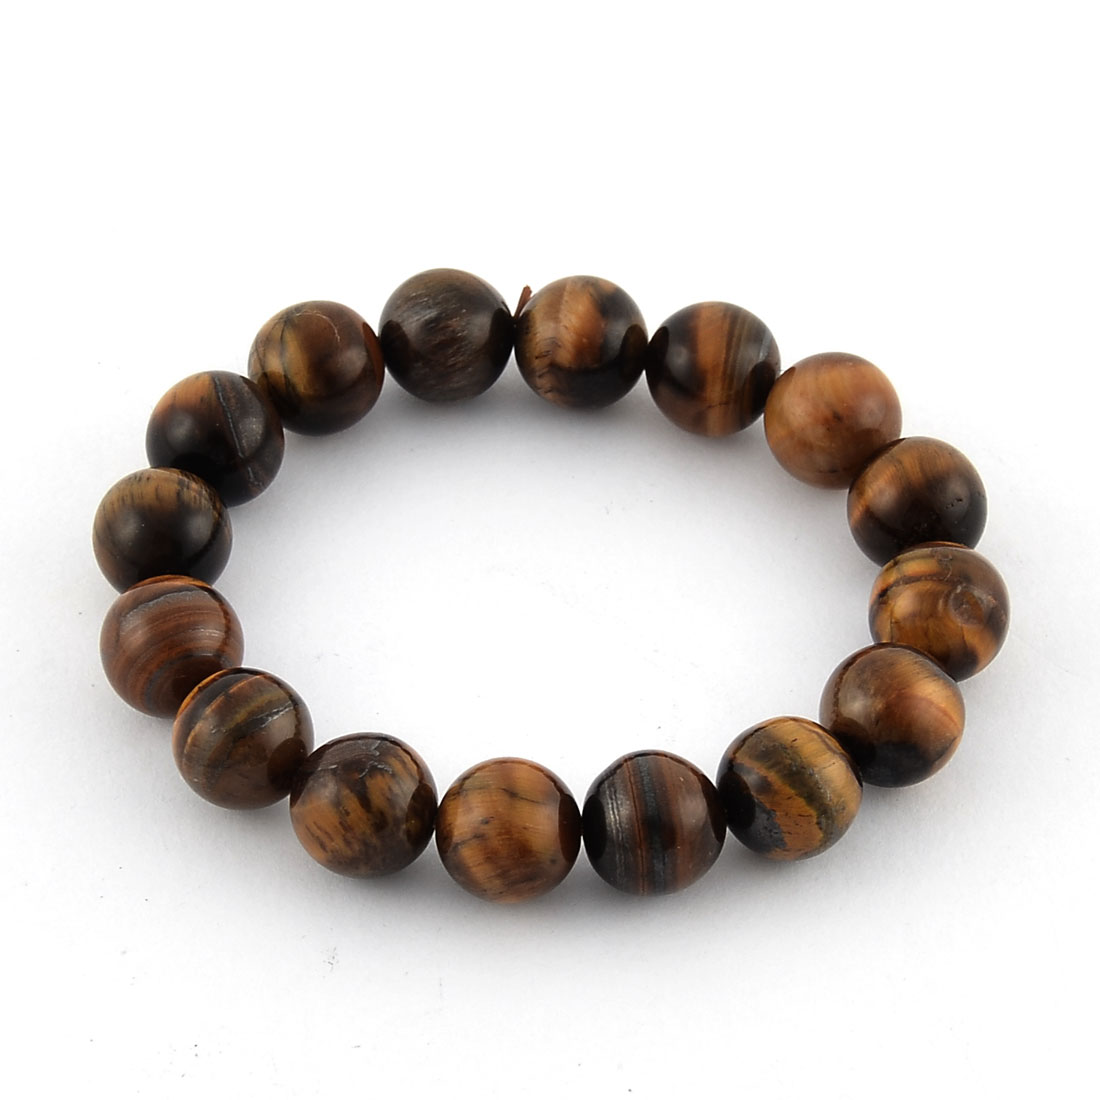 Faux Jade Beads Decor Elastic String Wrist Bracelet Bangle Brown Black